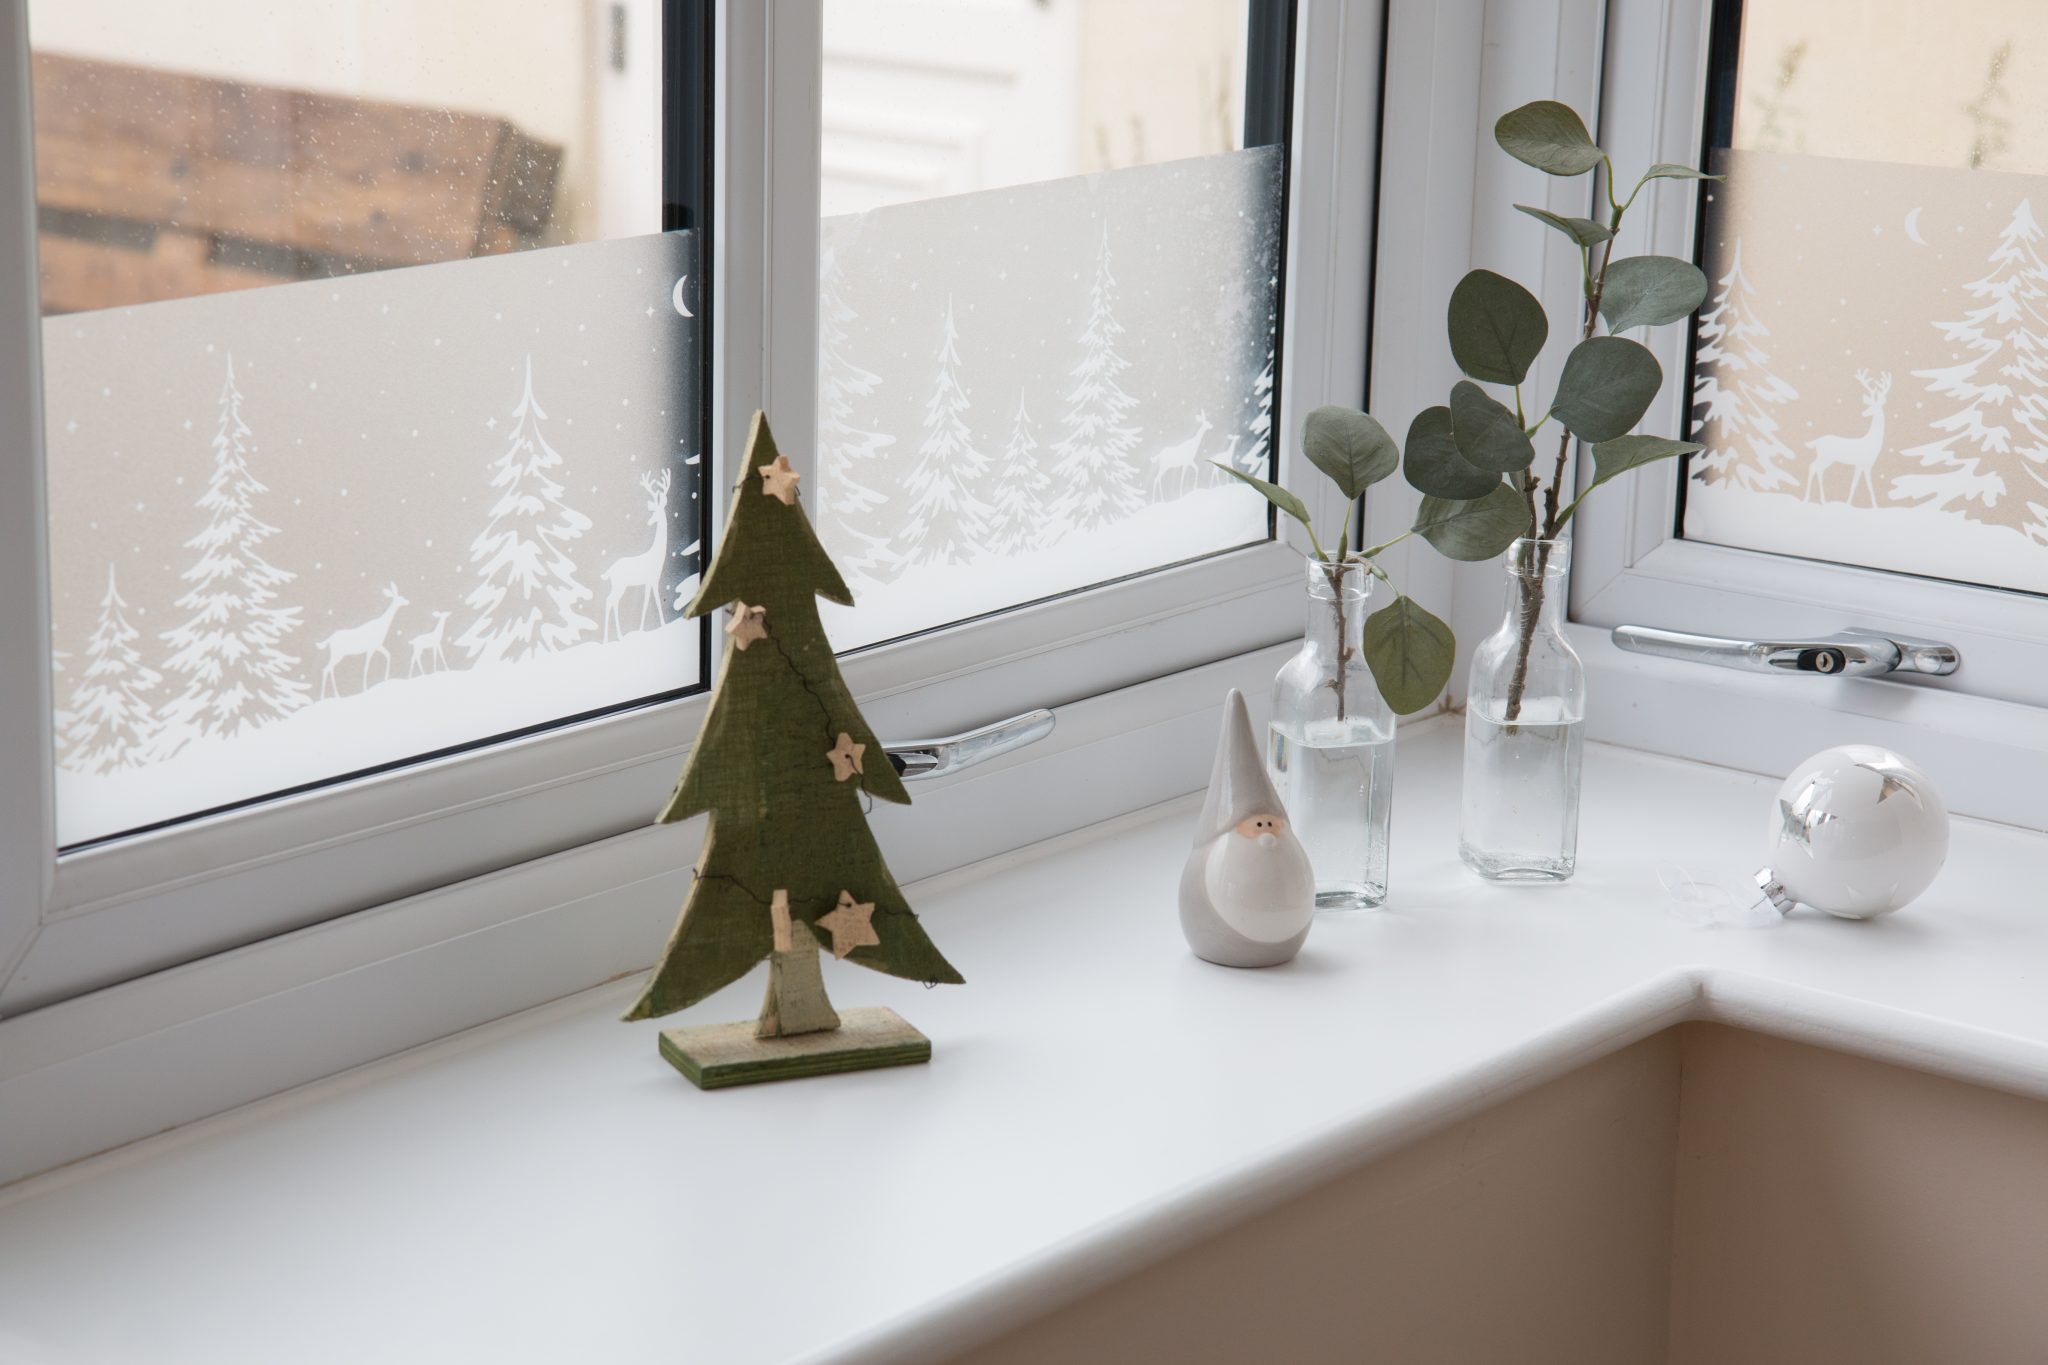 Festive winter ambiance with D-C-Fix® Winter Borders window film with a winter landscape motif.